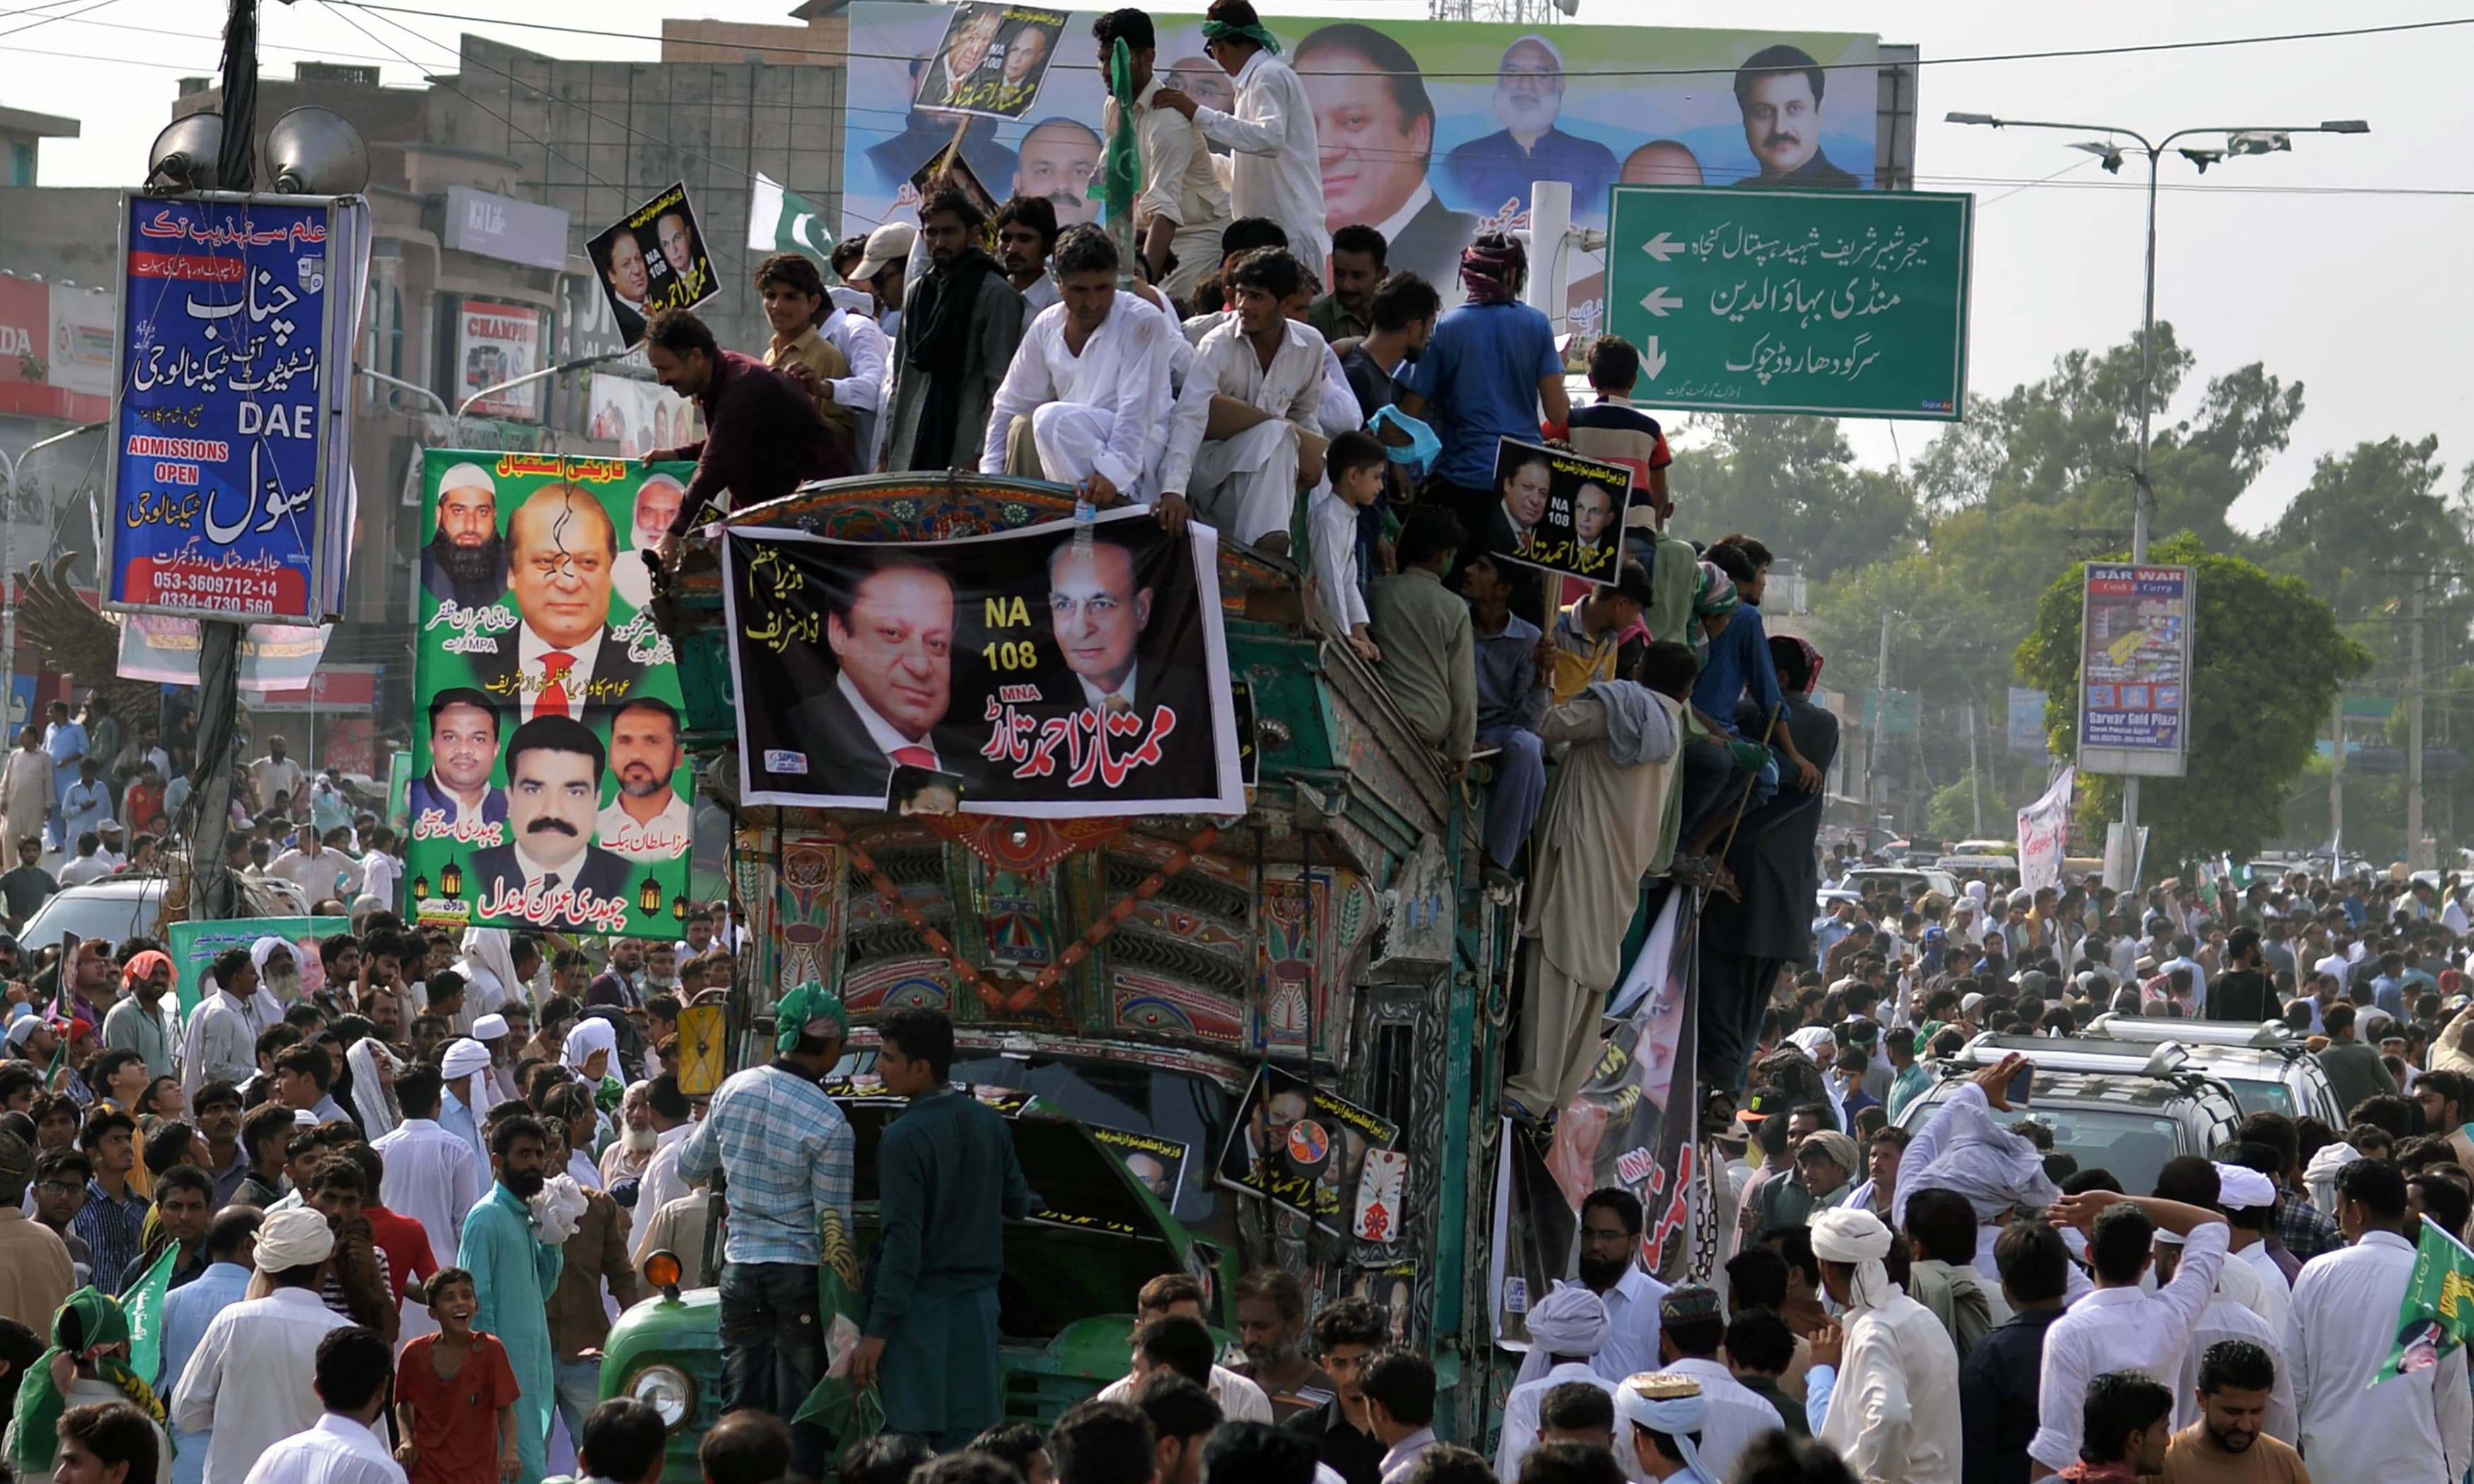 Supporters of Nawaz Sharif attend a rally in Gujrat. —AFP